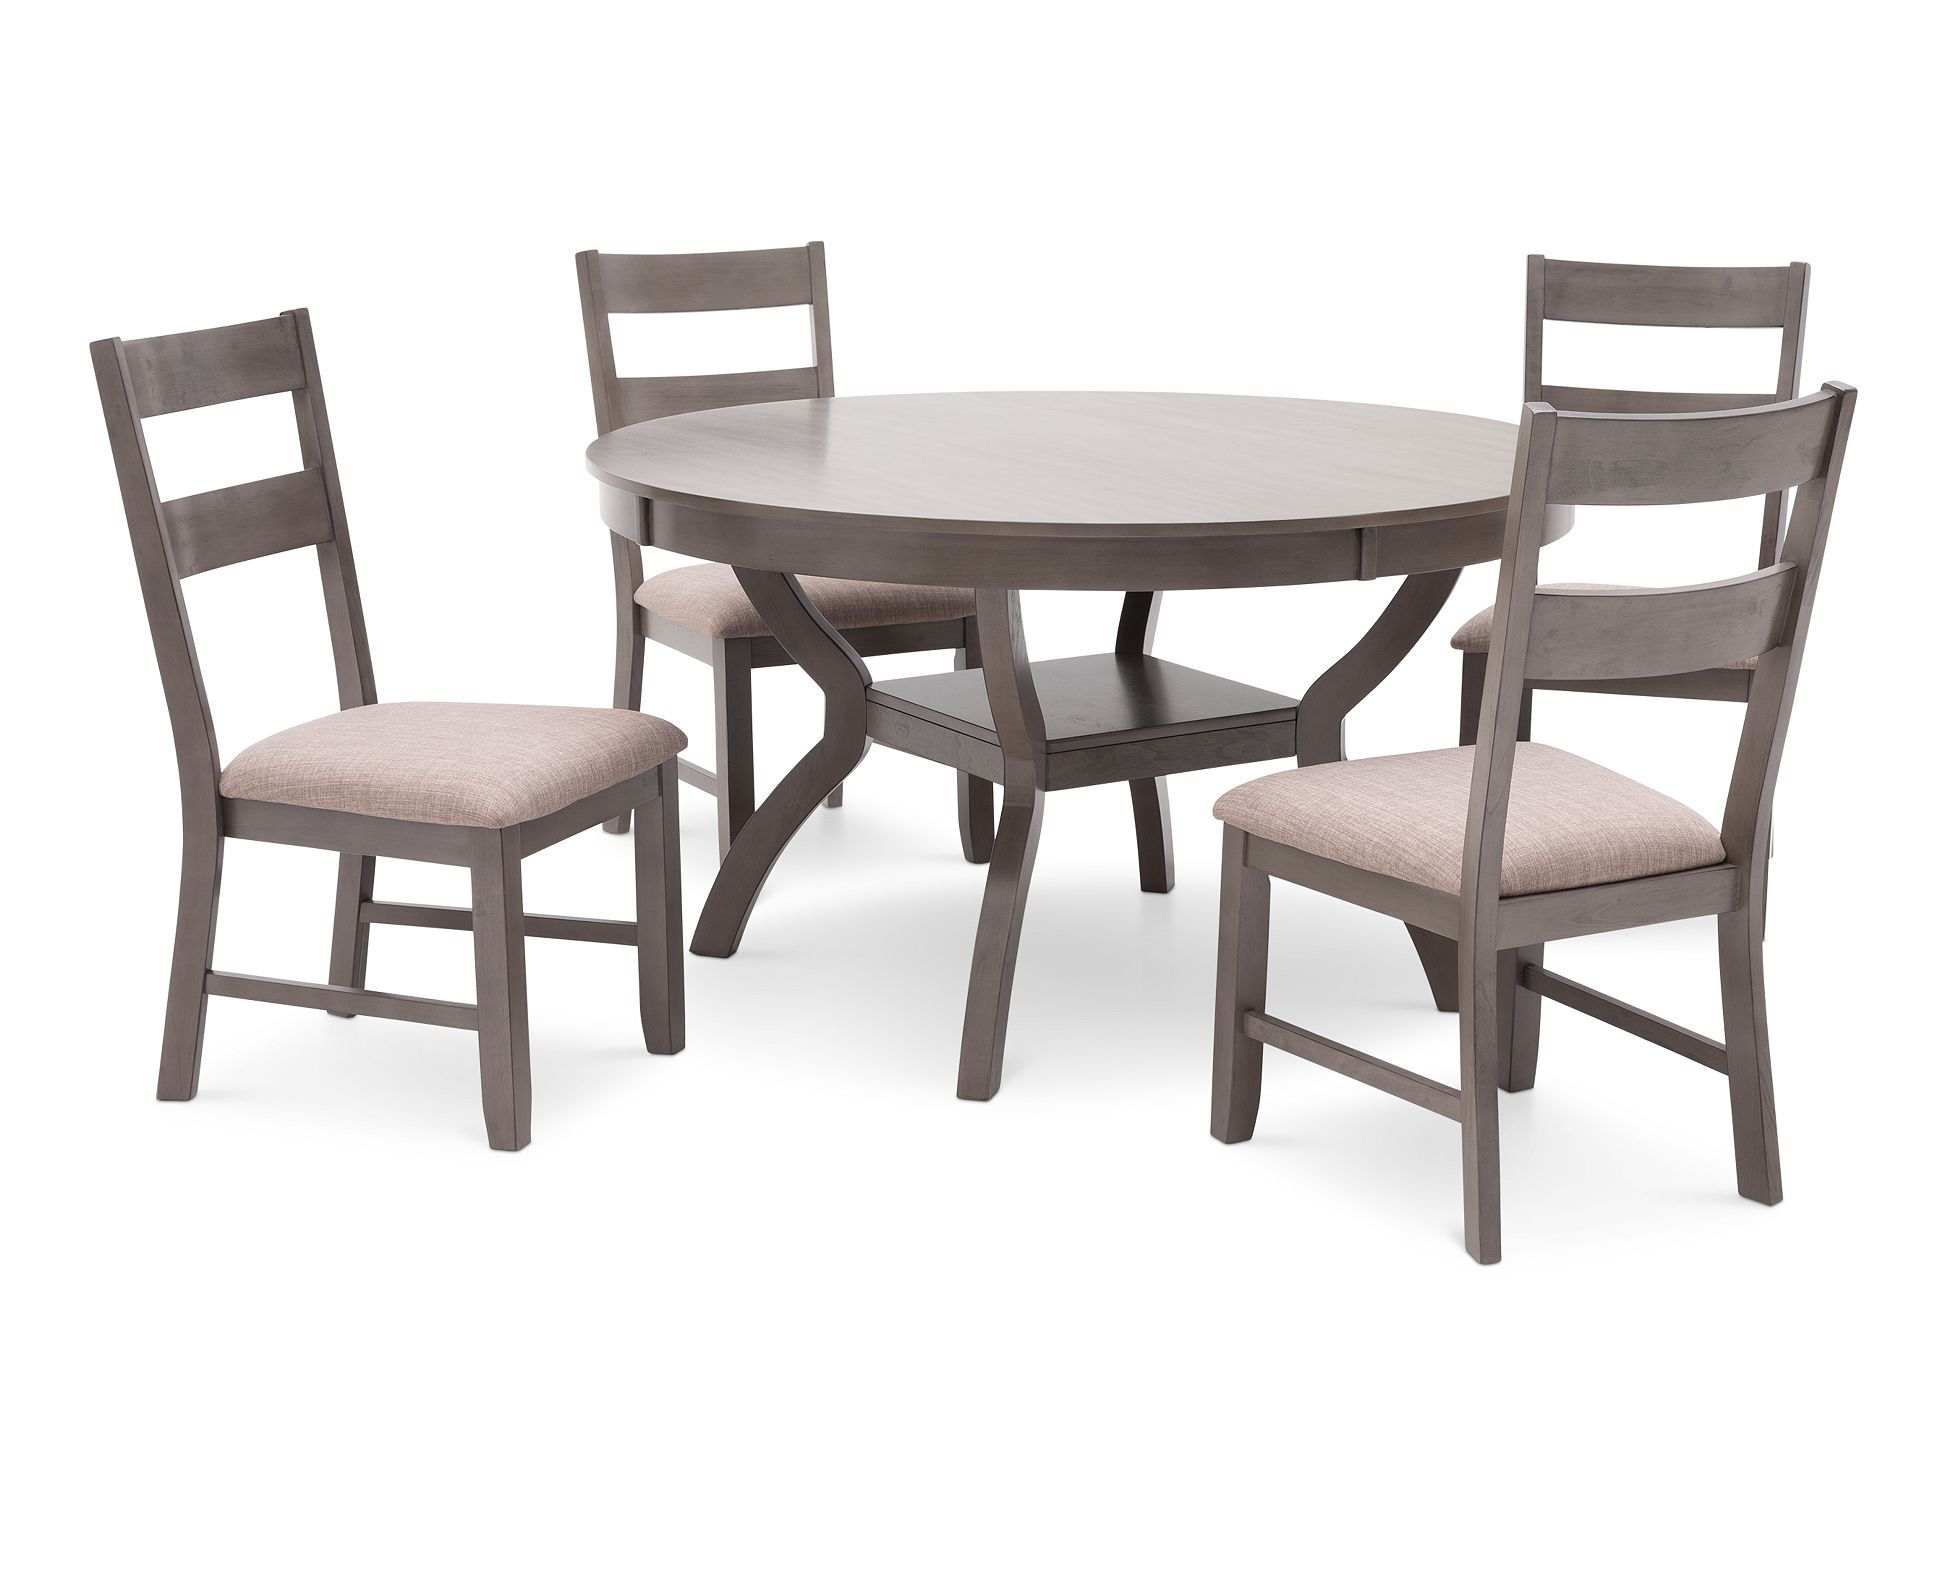 Grigio 5 Pc Dining Room Set Is Streamlined With Contemporary Styling In Cool Gray Finish Furnit Kitchen Table Chairs Rowe Furniture Round Dining Room Sets Kitchen table chairs for sale